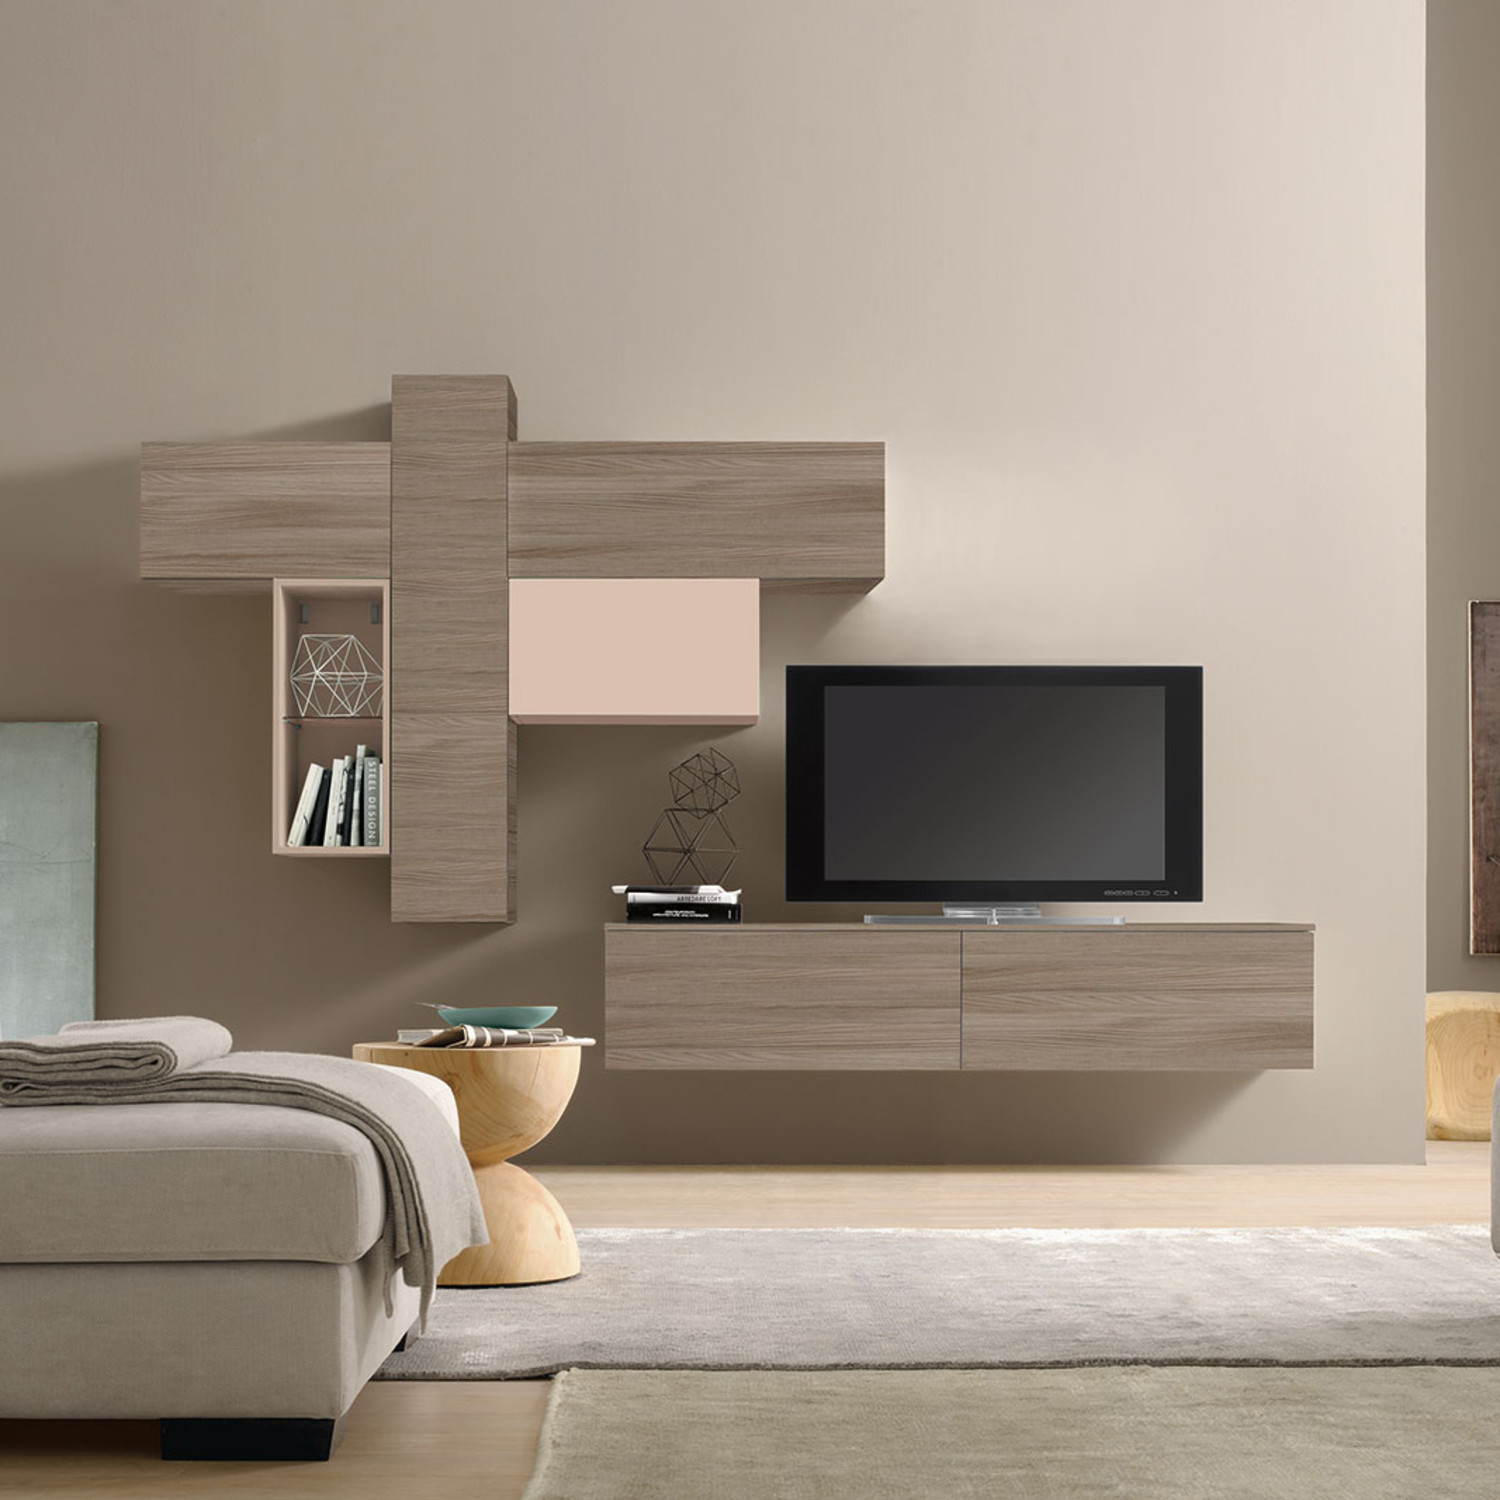 https://www.touchofmodern.com/sales/modloft-living-a66c92c5-f601-4bb1-9ec7-f6793353394c/ravenna-wall-unit-walnut-frappe?share_invite_token=WQ3PD6V0